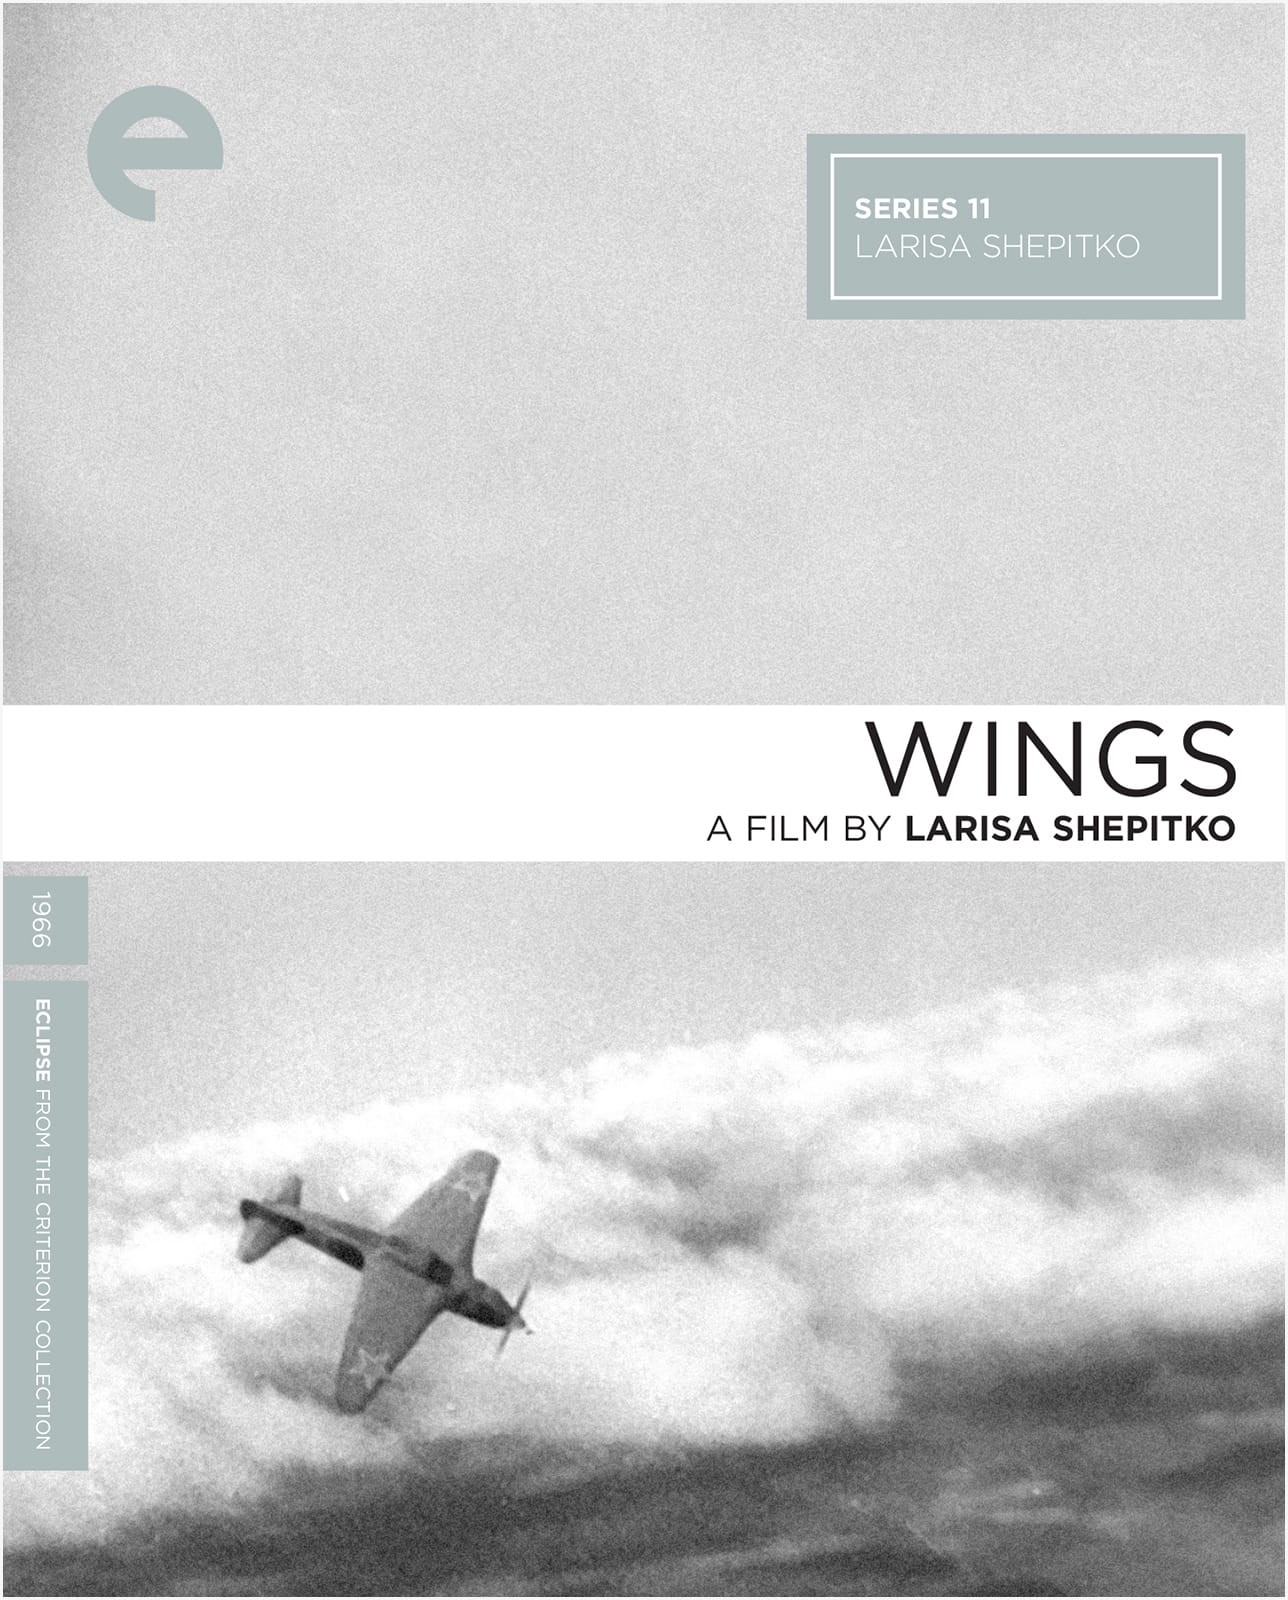 Wings (1966) | The Criterion Collection